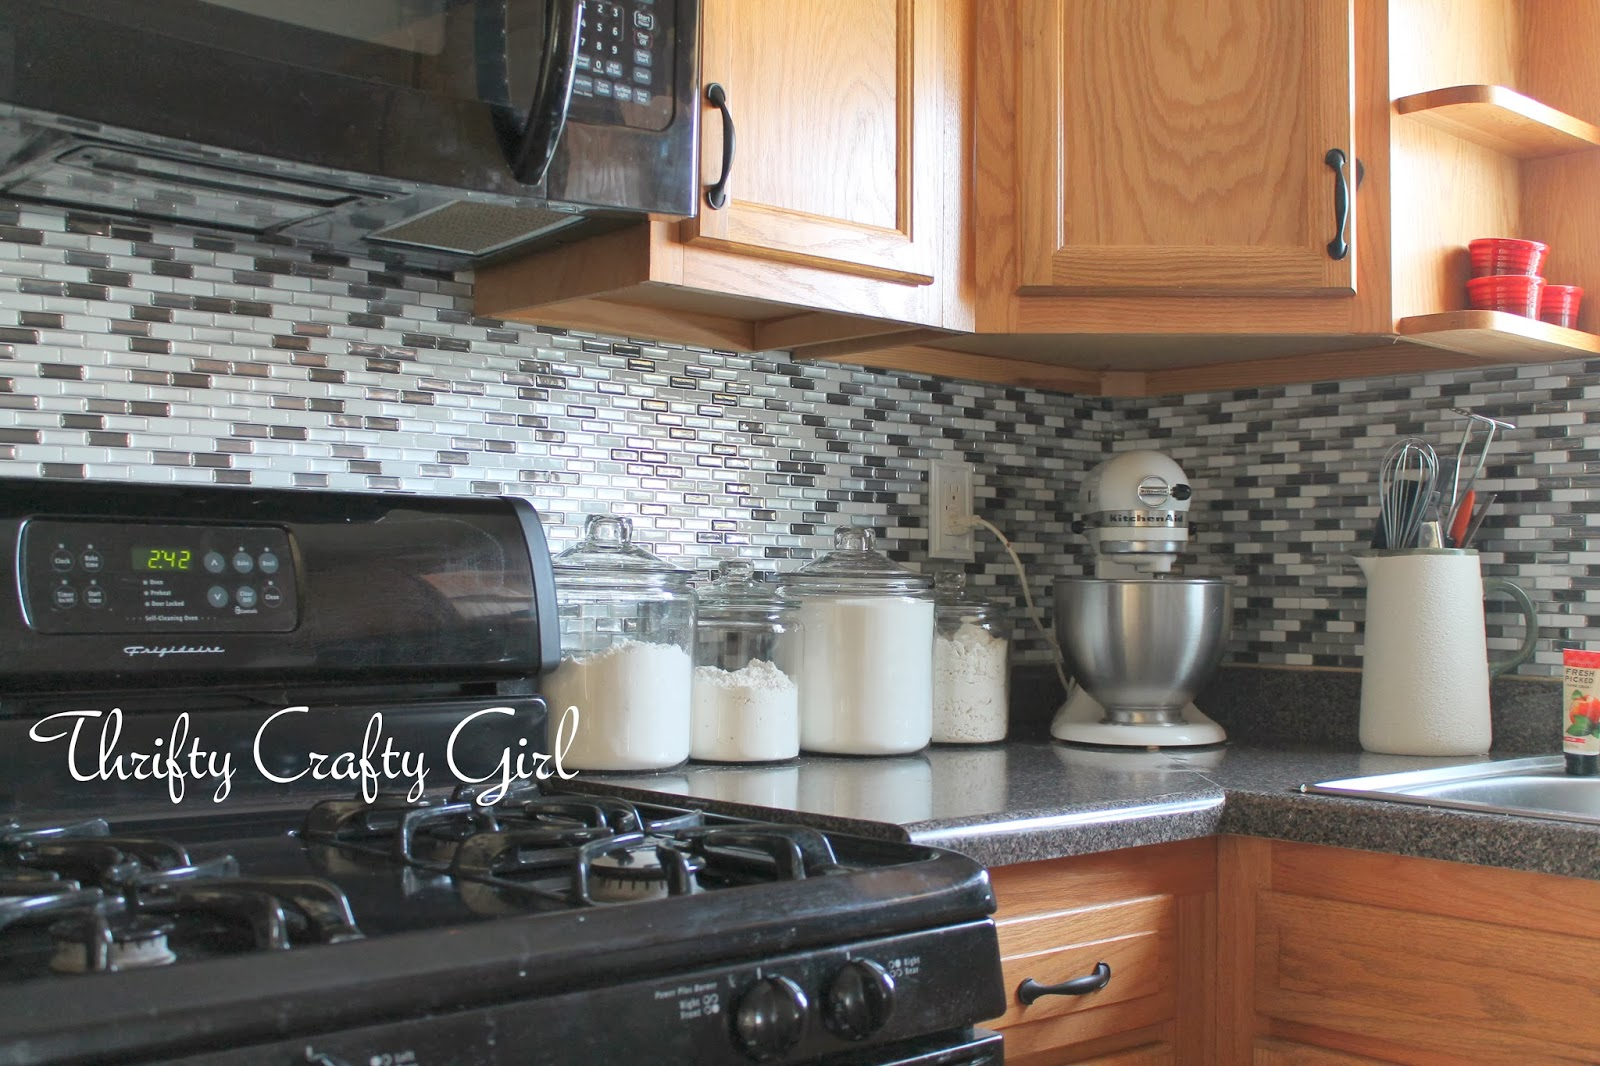 how to install backsplash in kitchen much is a new thrifty crafty girl easy with smart tiles